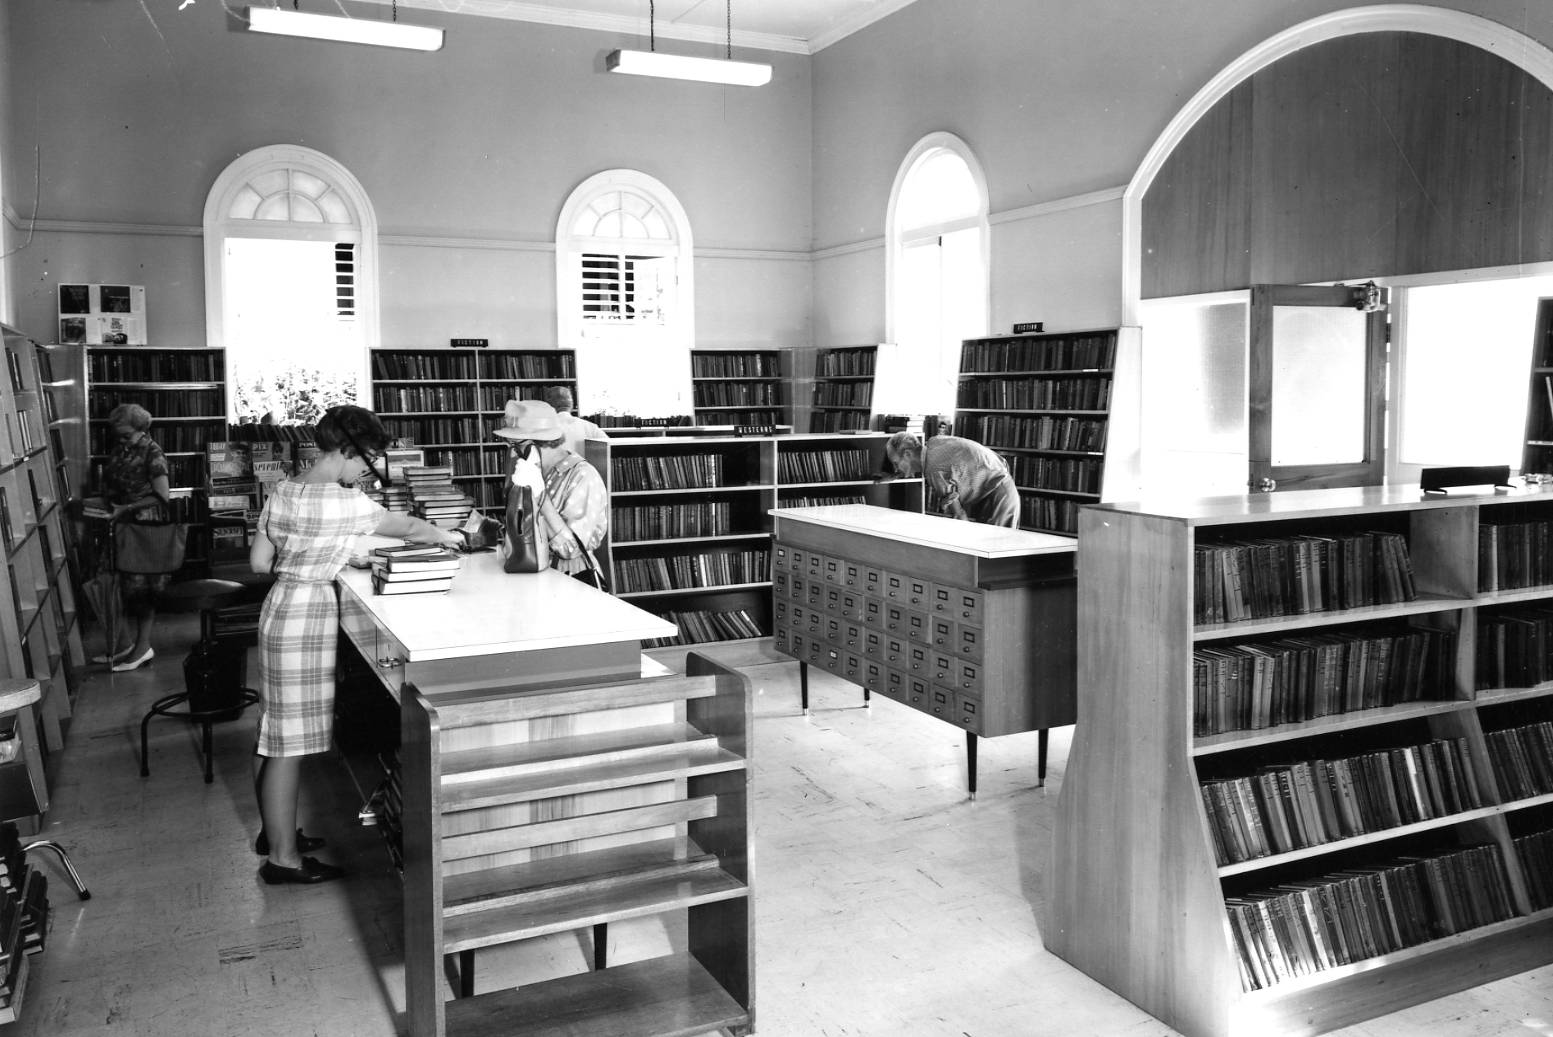 west end library 1964 BCC